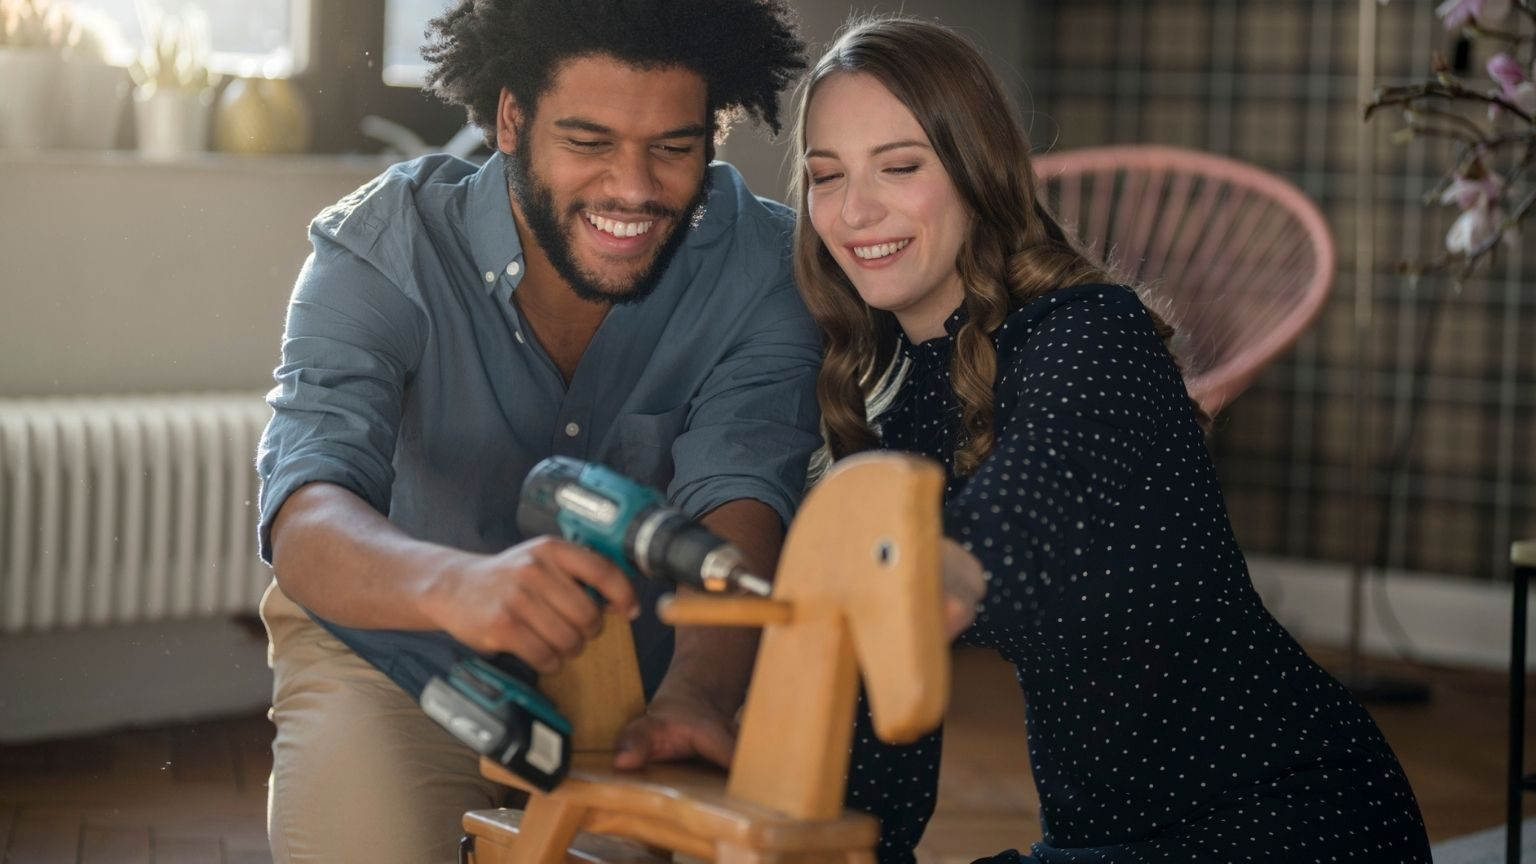 couple mounting rocking horse with cordless drill